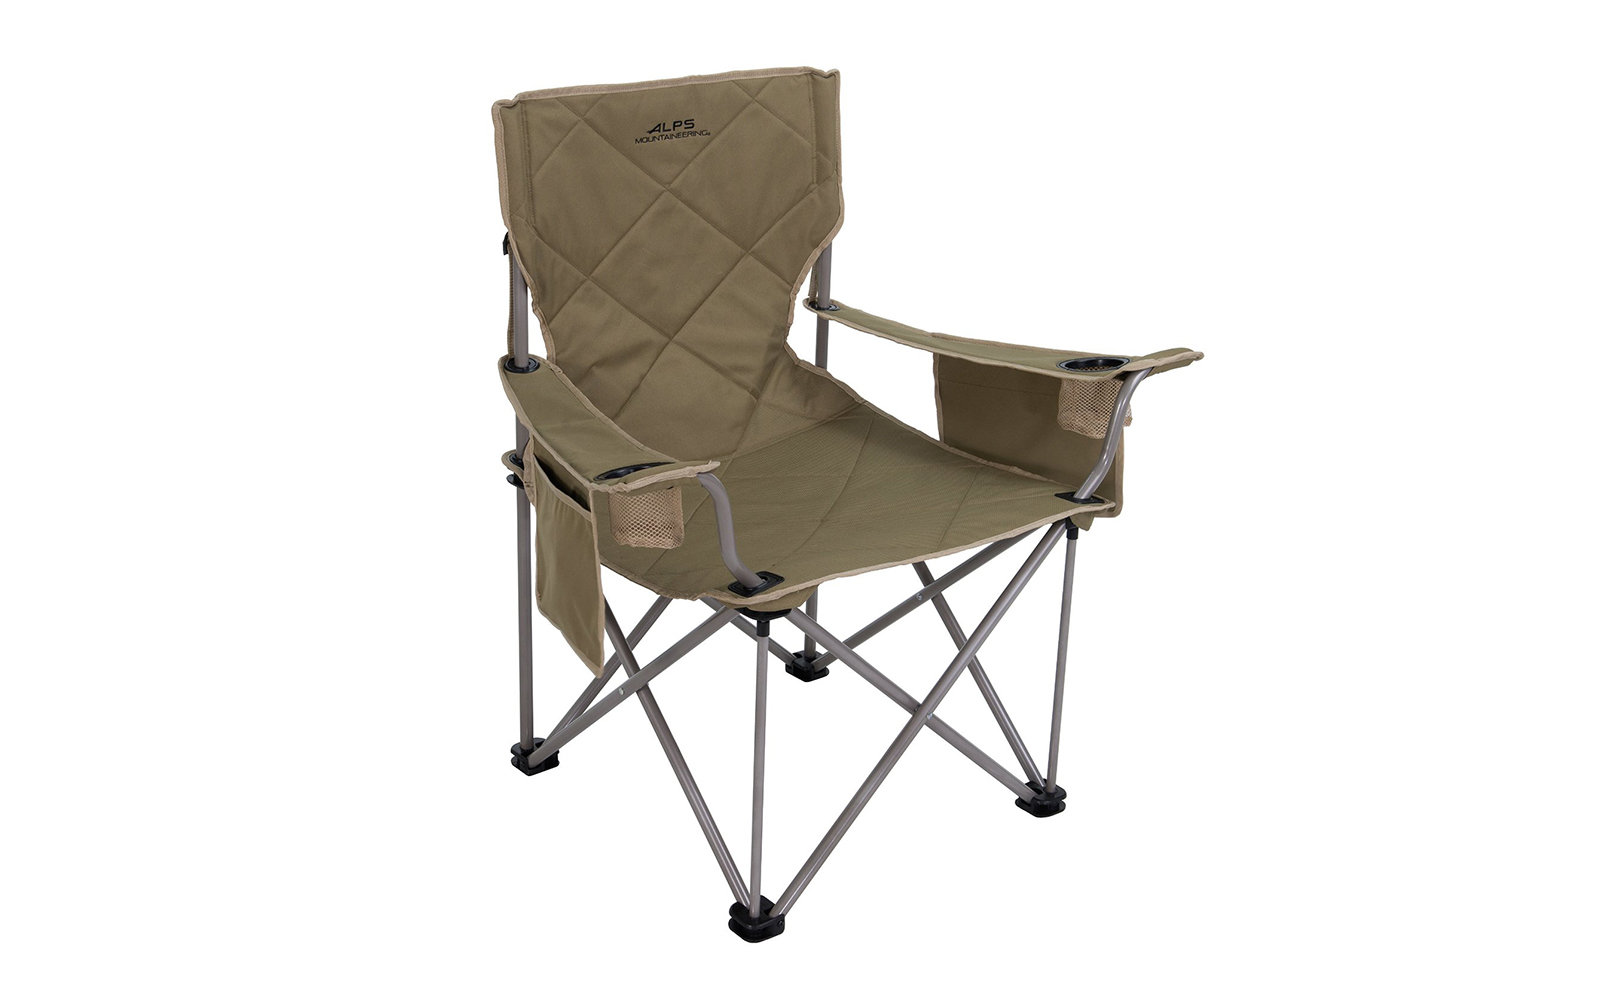 magellan fishing chair ergonomic amazon the best folding camping chairs travel leisure alps mountaineering camp